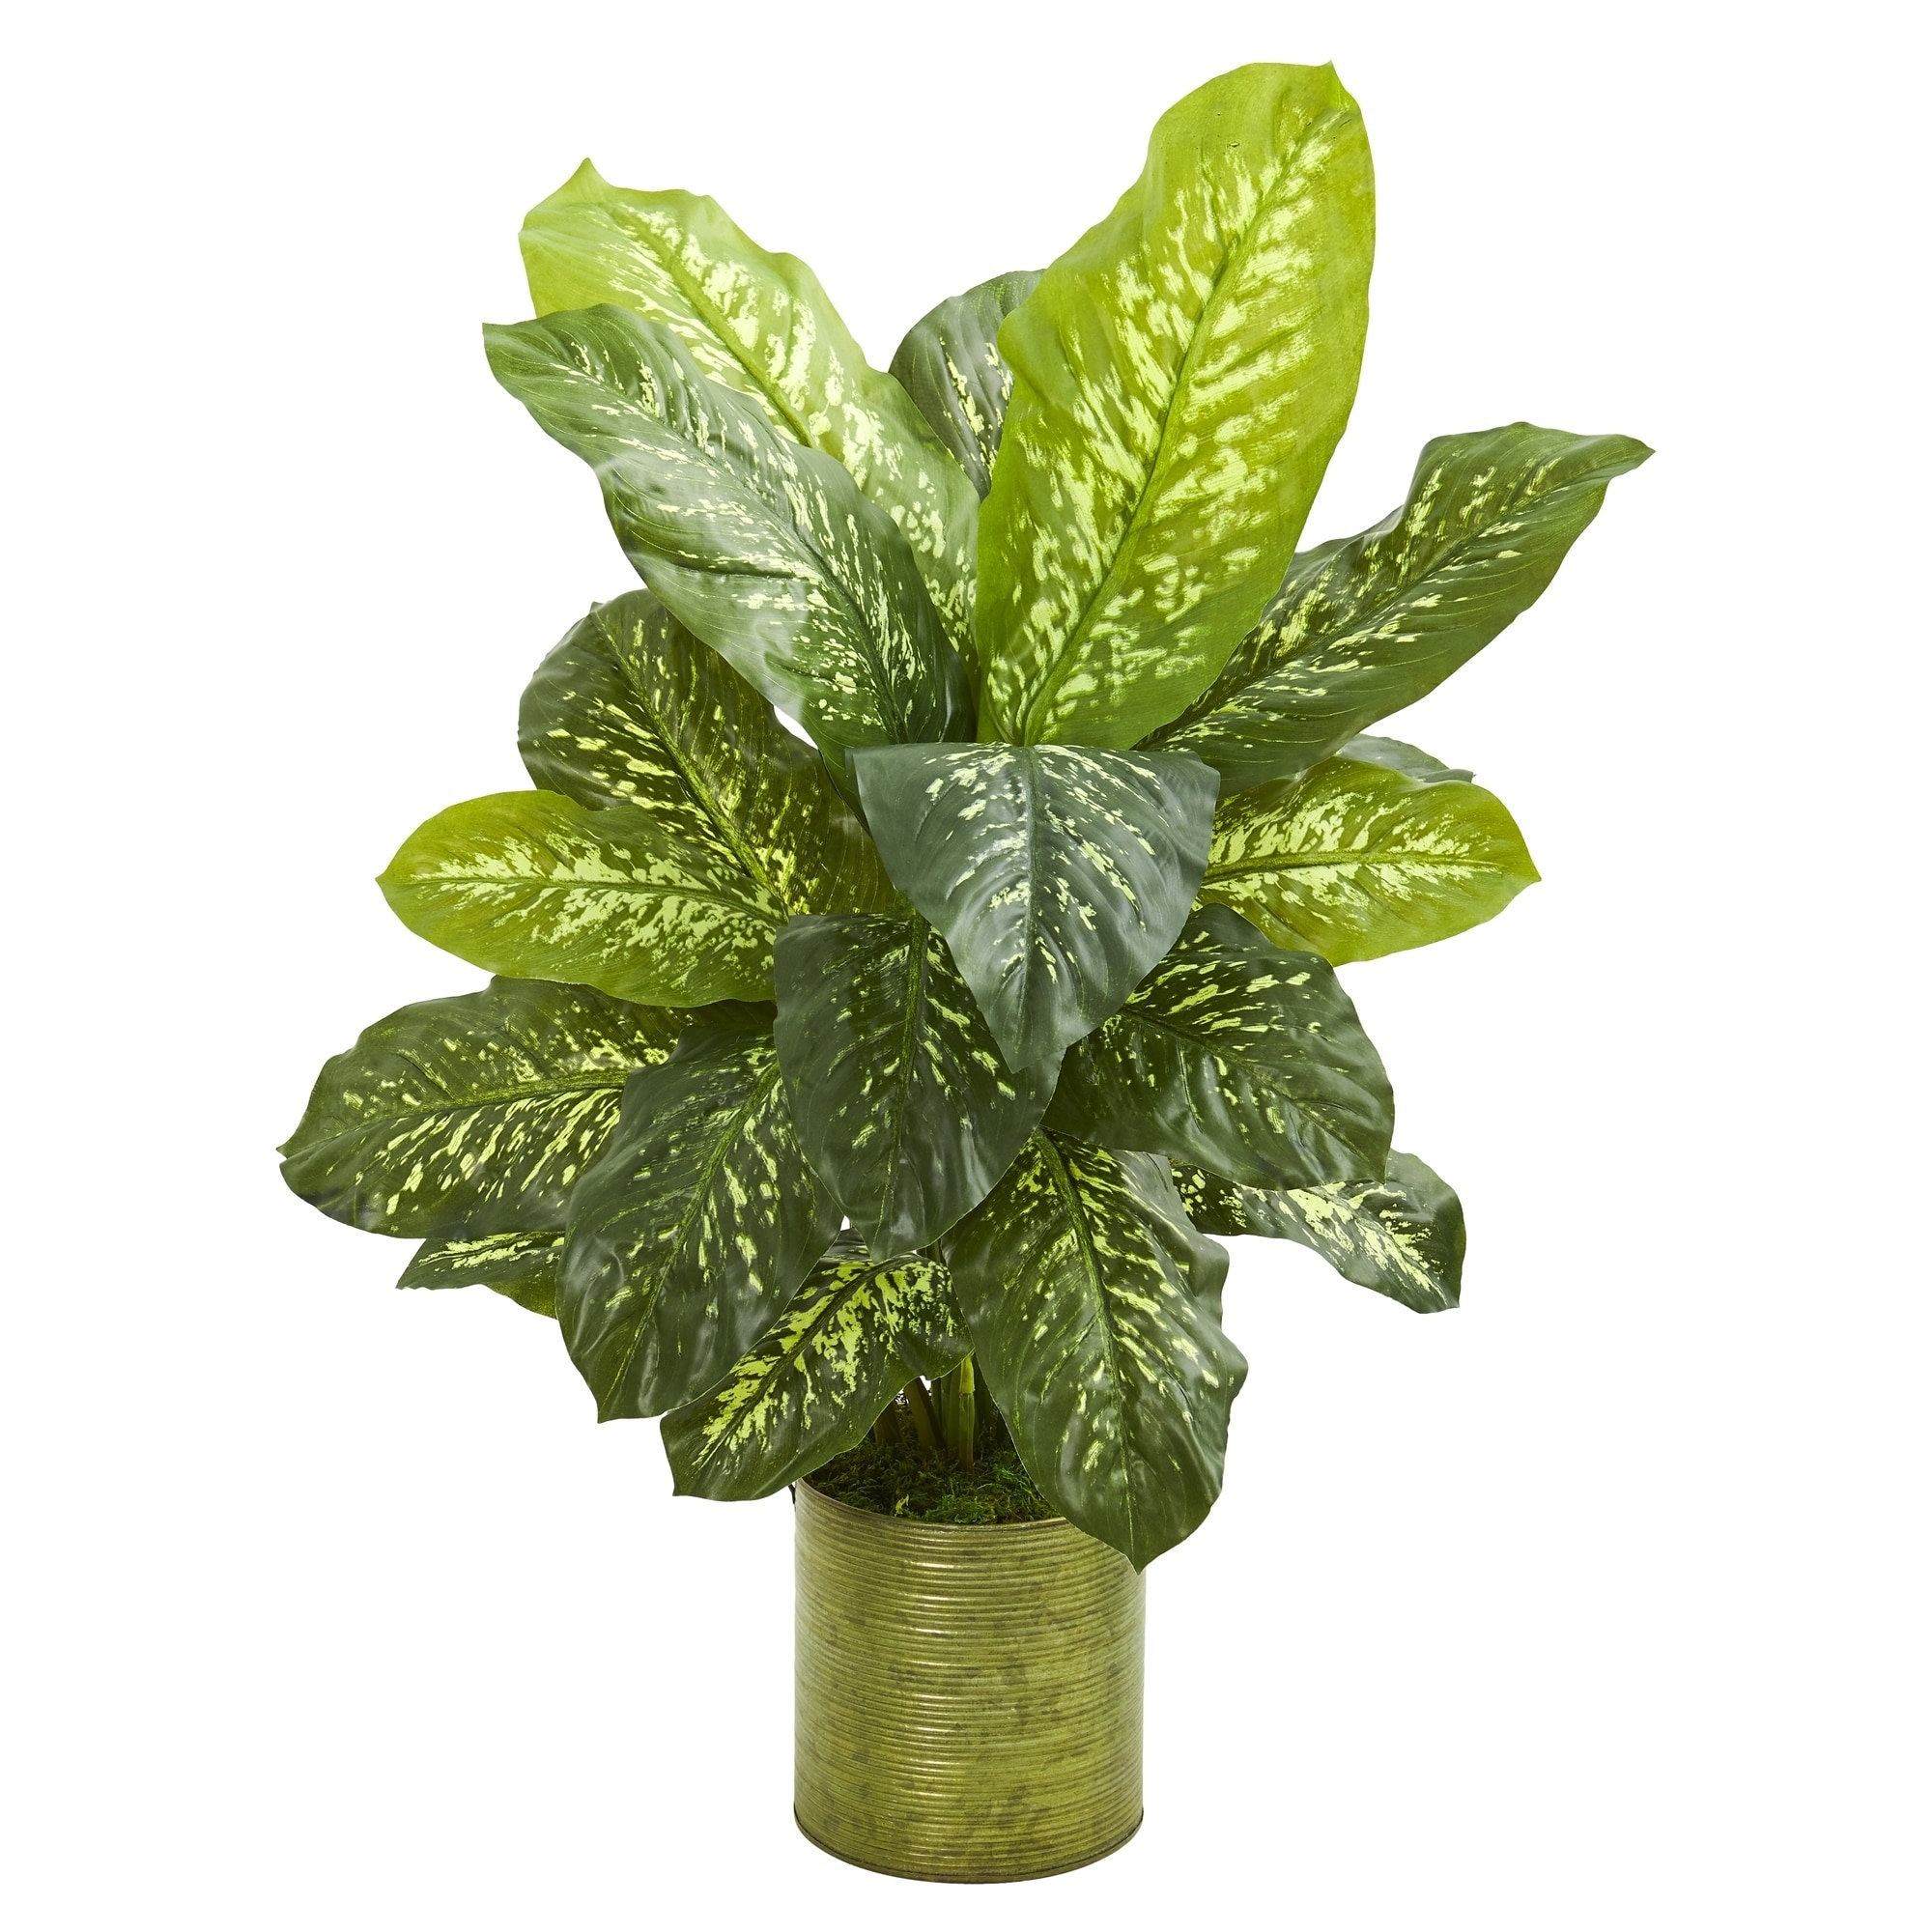 36 Dieffenbachia Artificial Plant in Green Planter (Real Touch)